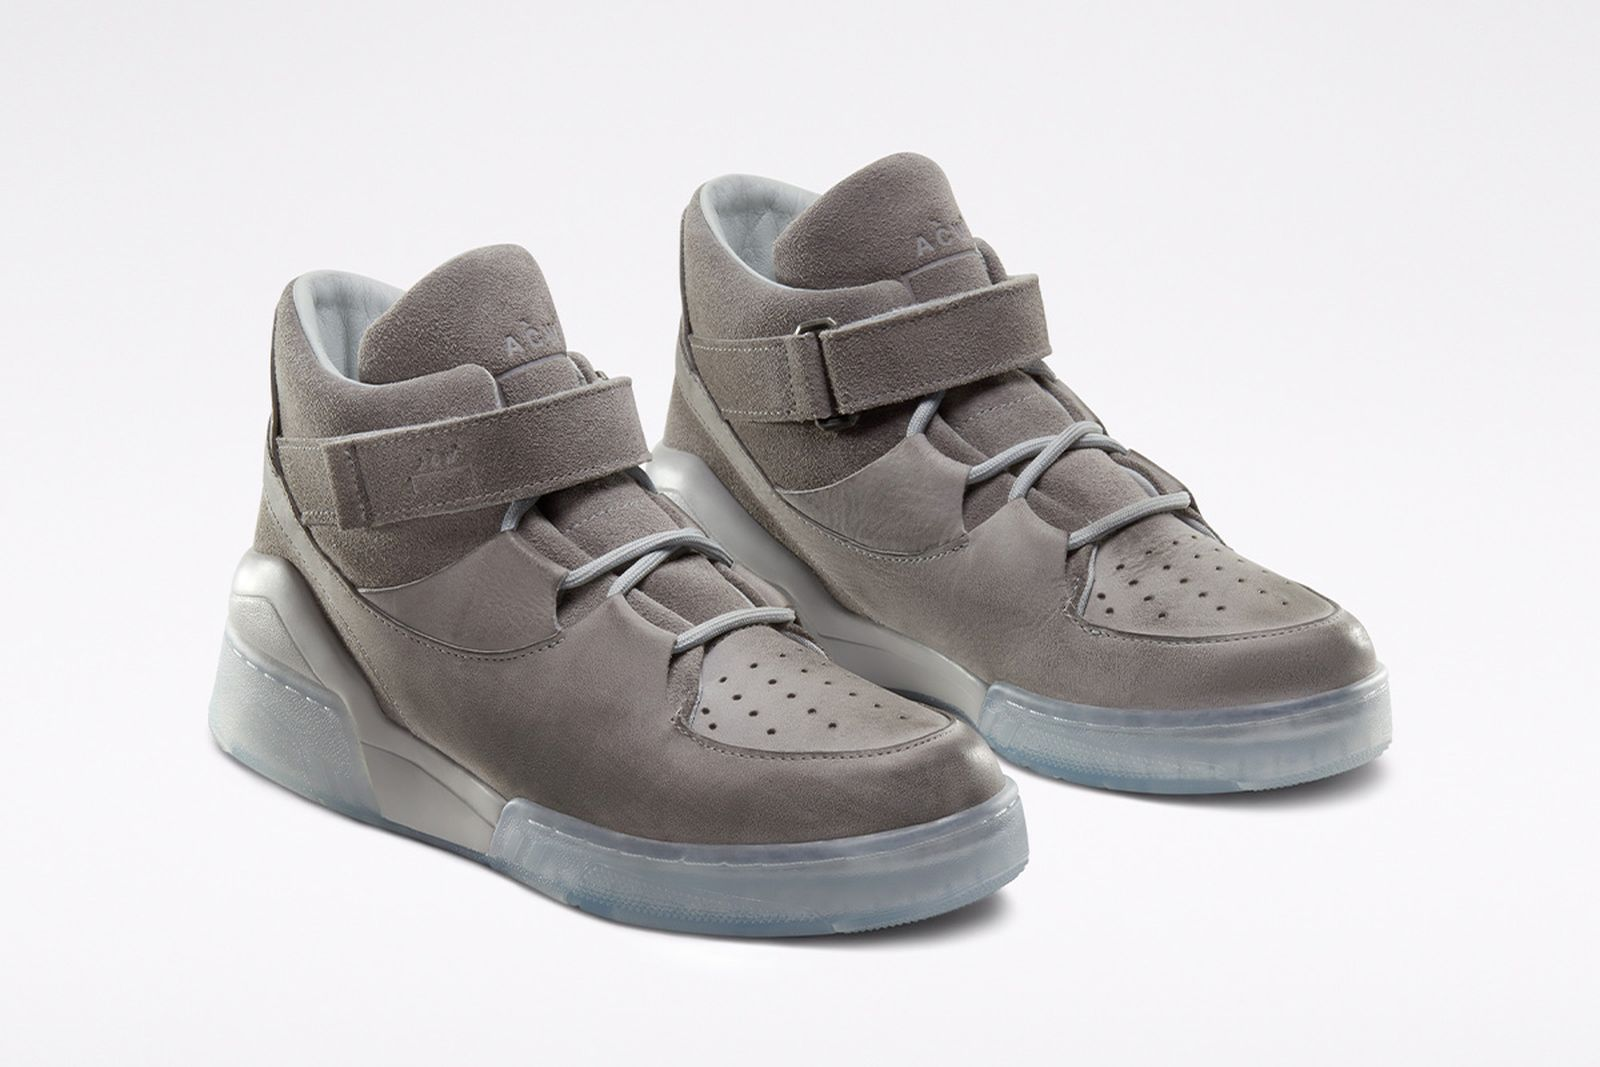 a-cold-wall-converse-chuck-taylor-lugged-release-date-price-07